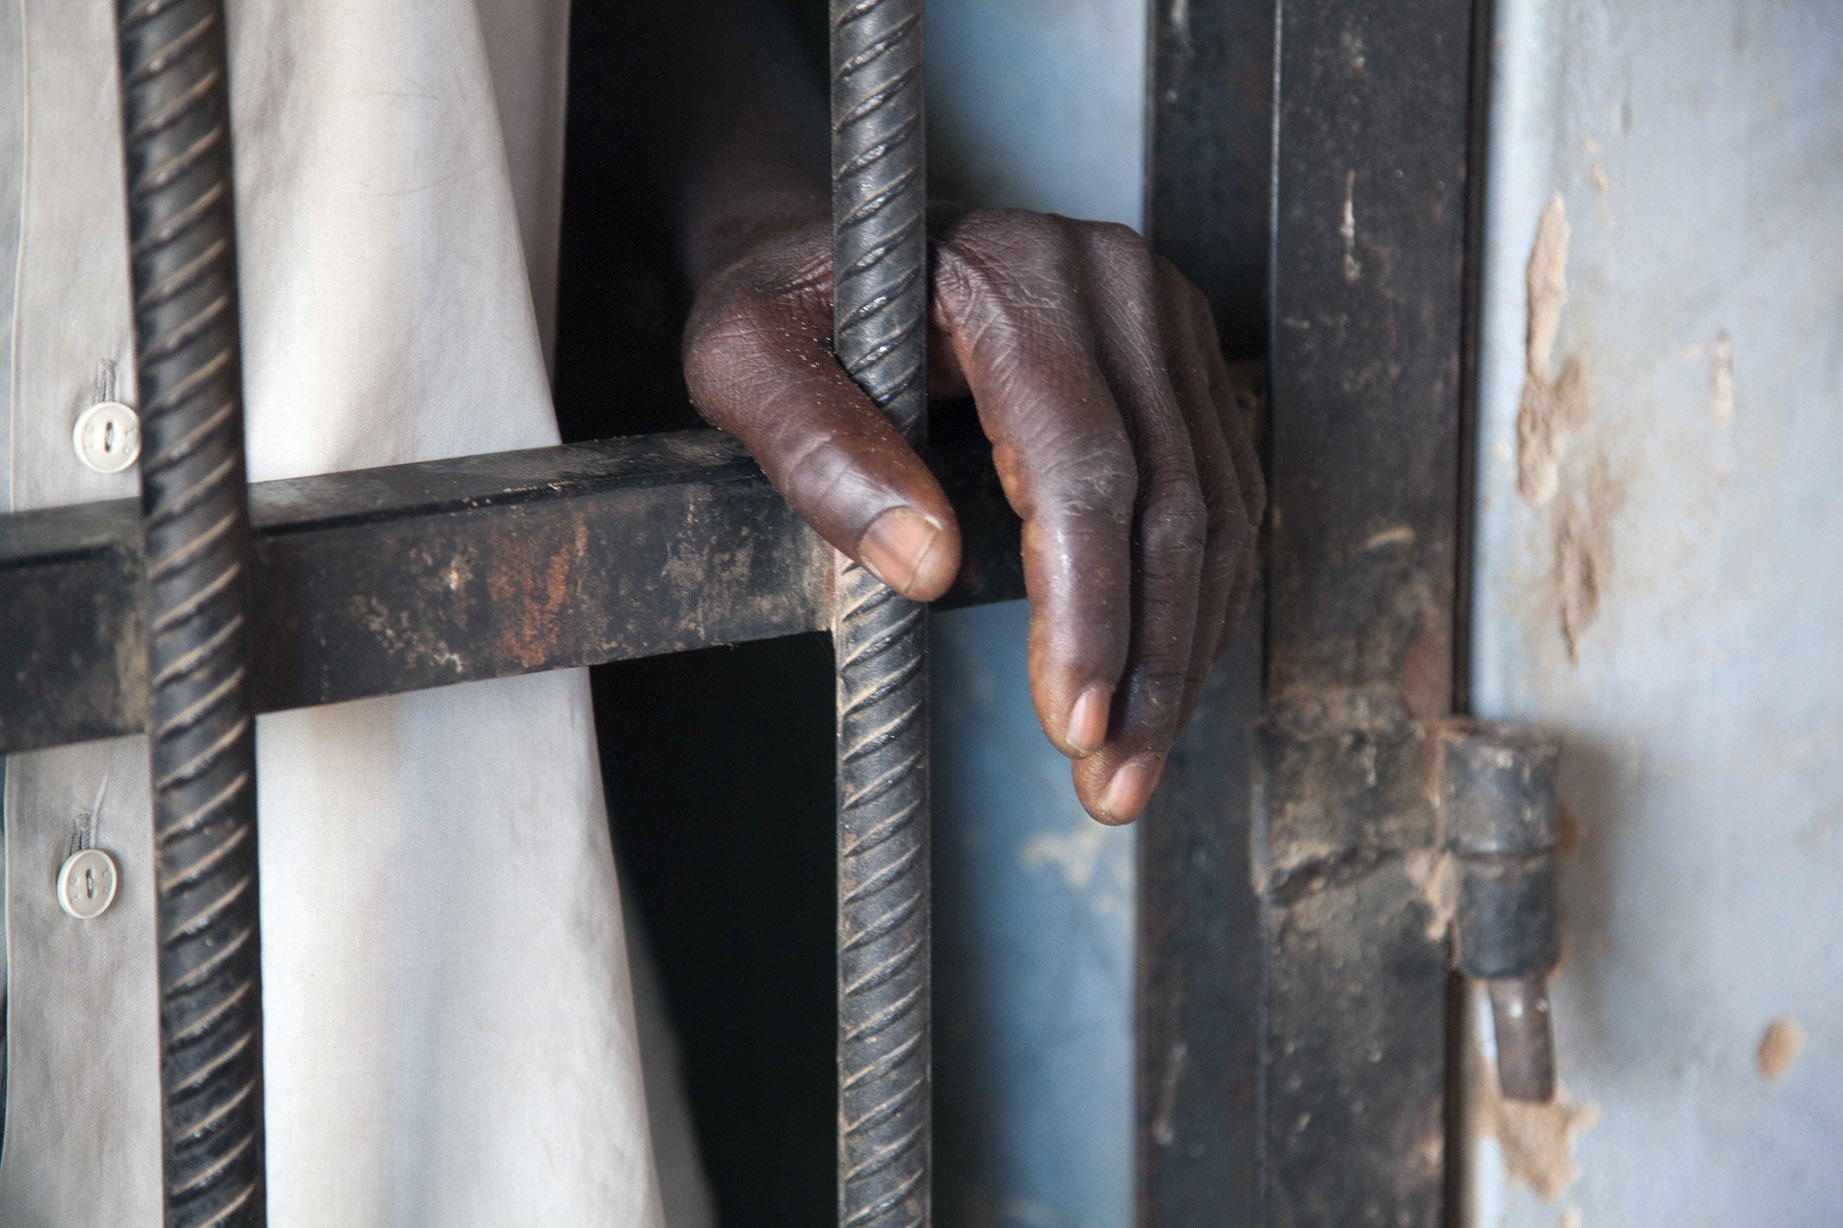 prisoners, for generic use. 